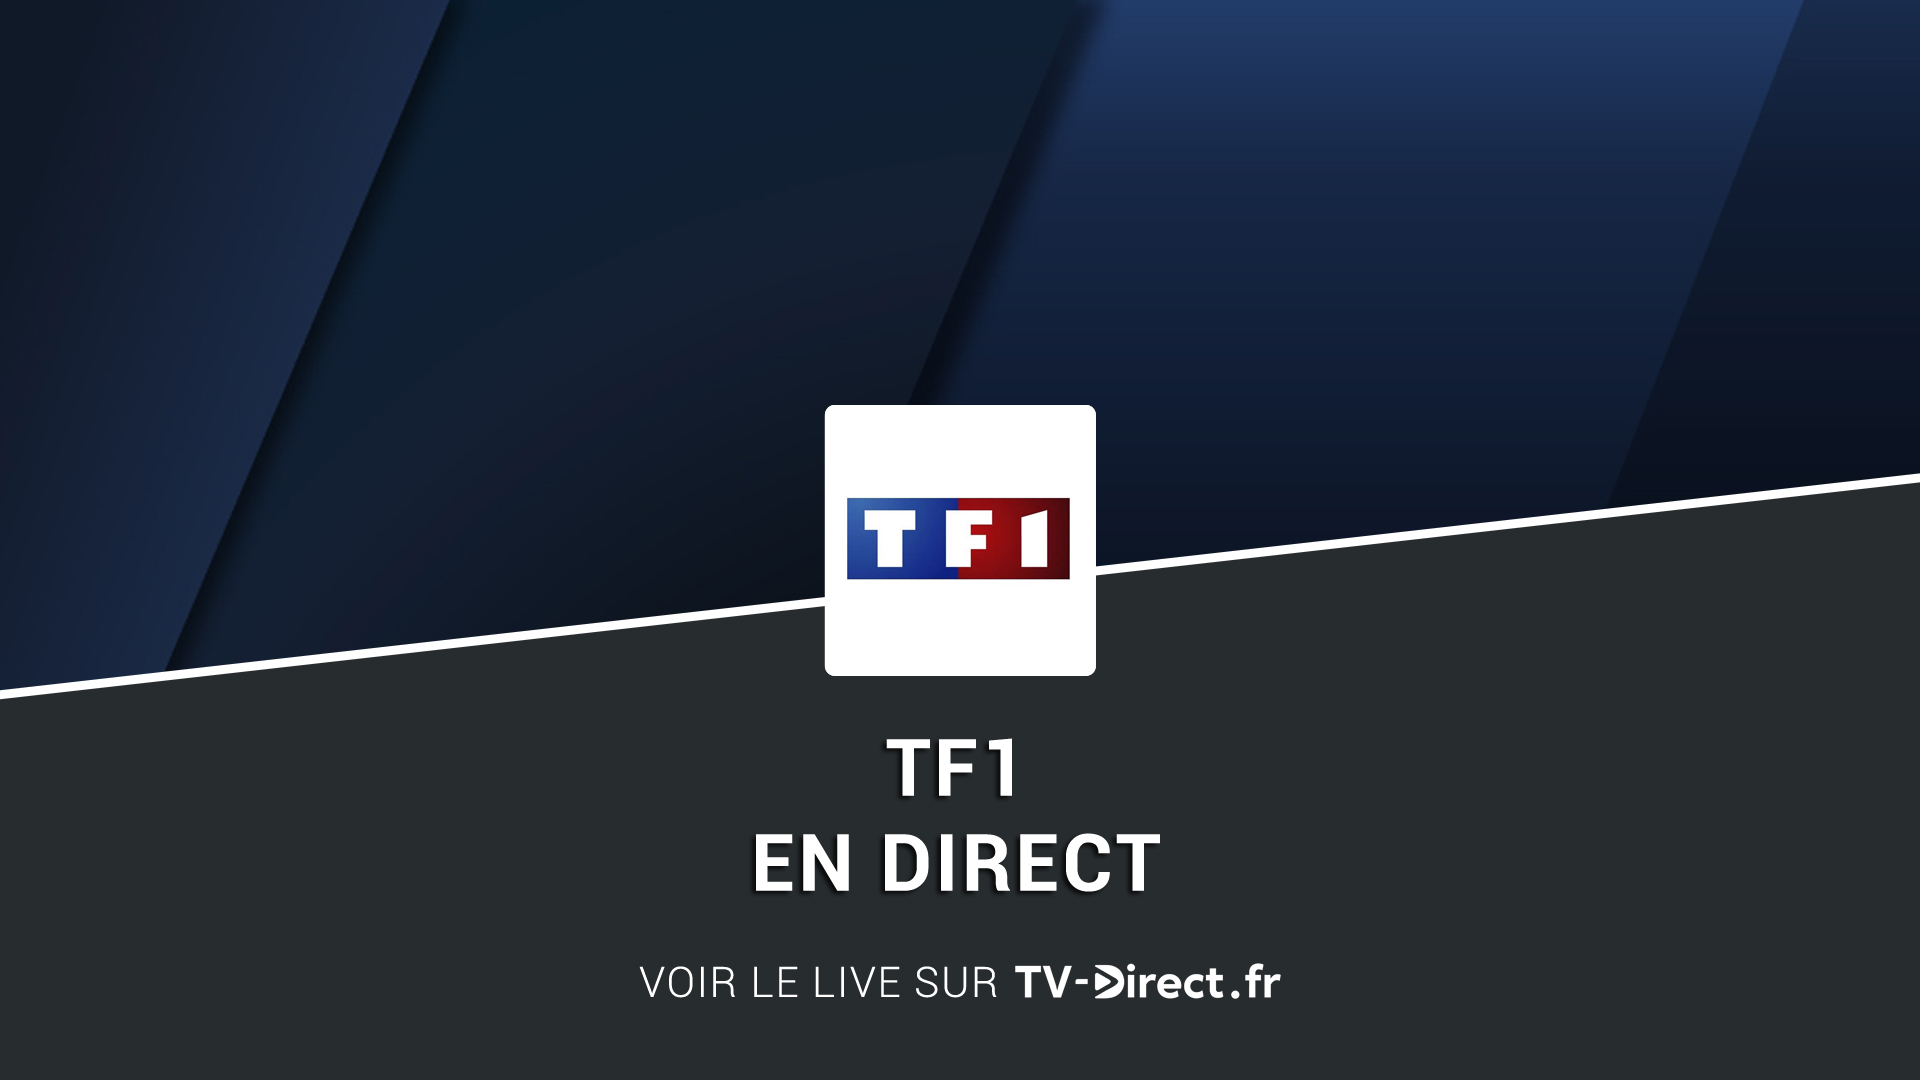 Tf1 direct regarder tf1 en direct live sur internet - Regarder coupe de france en direct ...